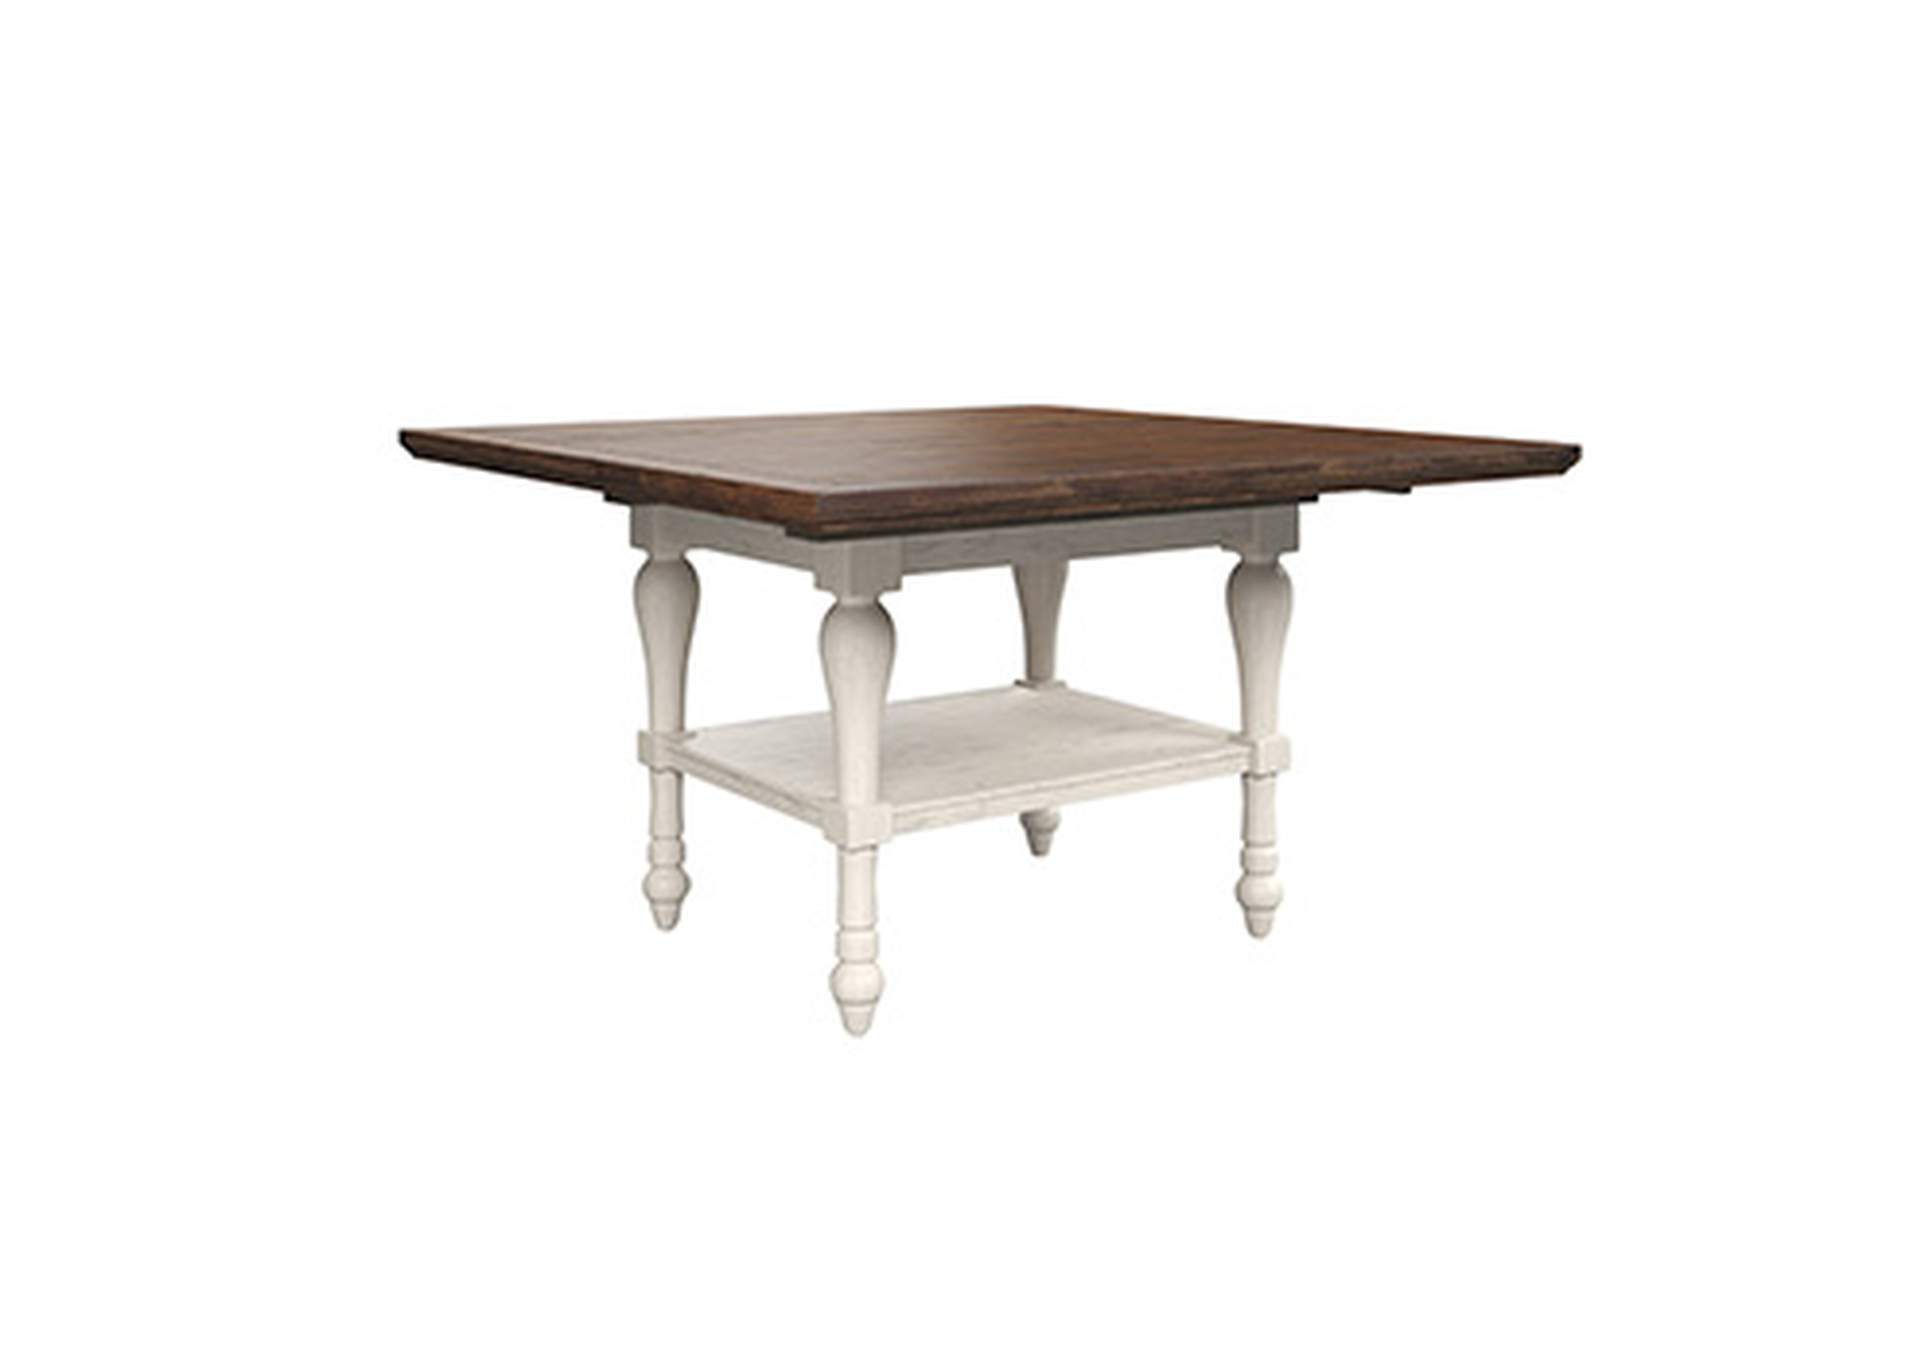 Marsilona Counter Height Dining Room Extension Table